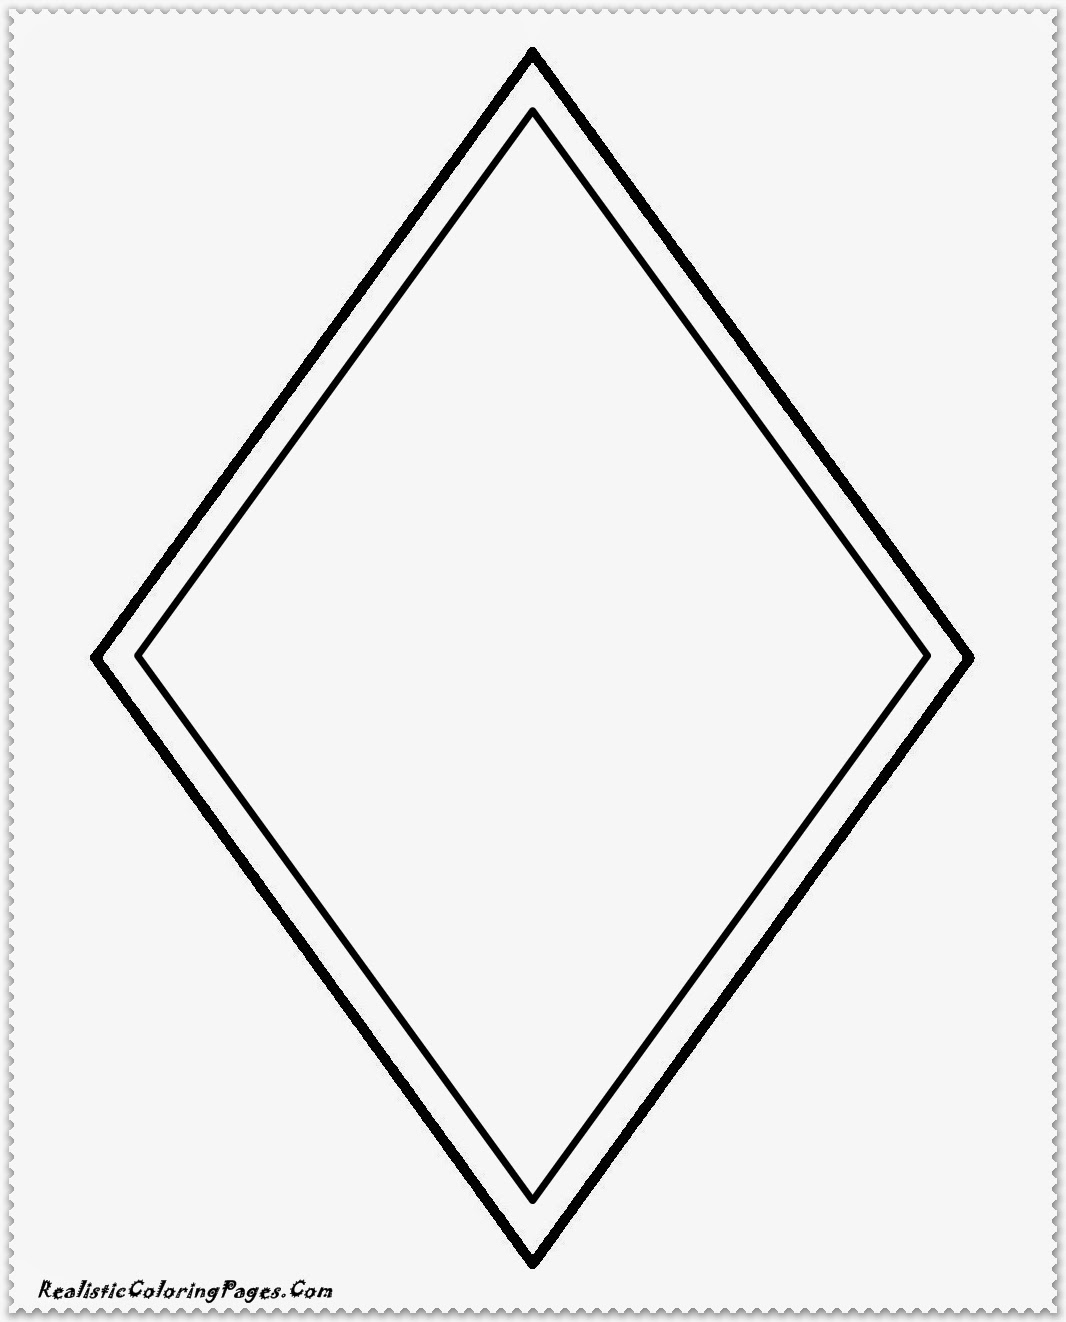 Simple shape coloring pages realistic coloring pages for Diamond coloring page